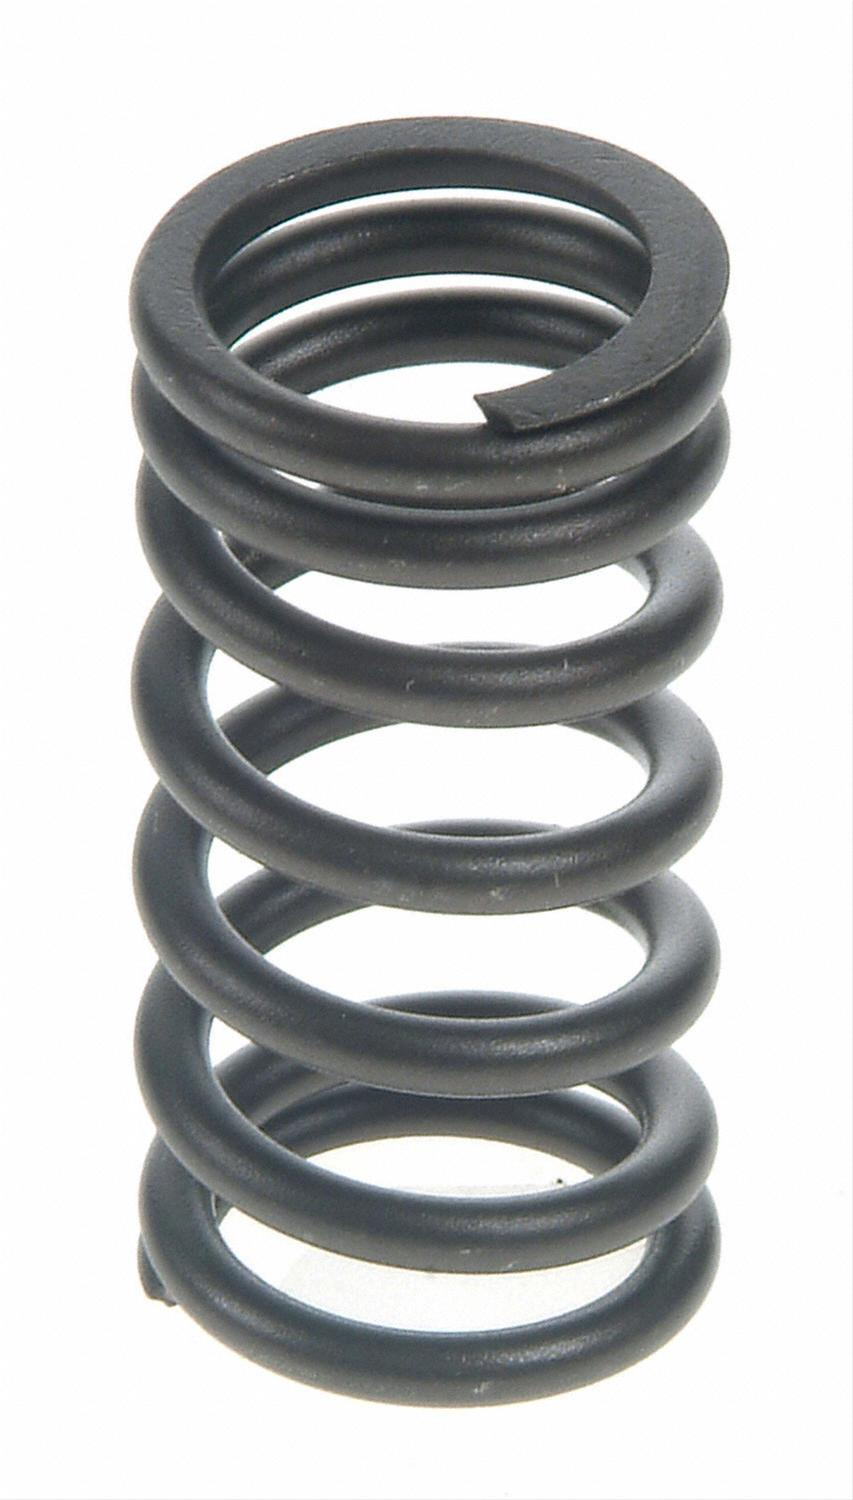 sealed power valve springs vs 1632sealed power valve springs vs 1632 free shipping on orders over $99 at summit racing